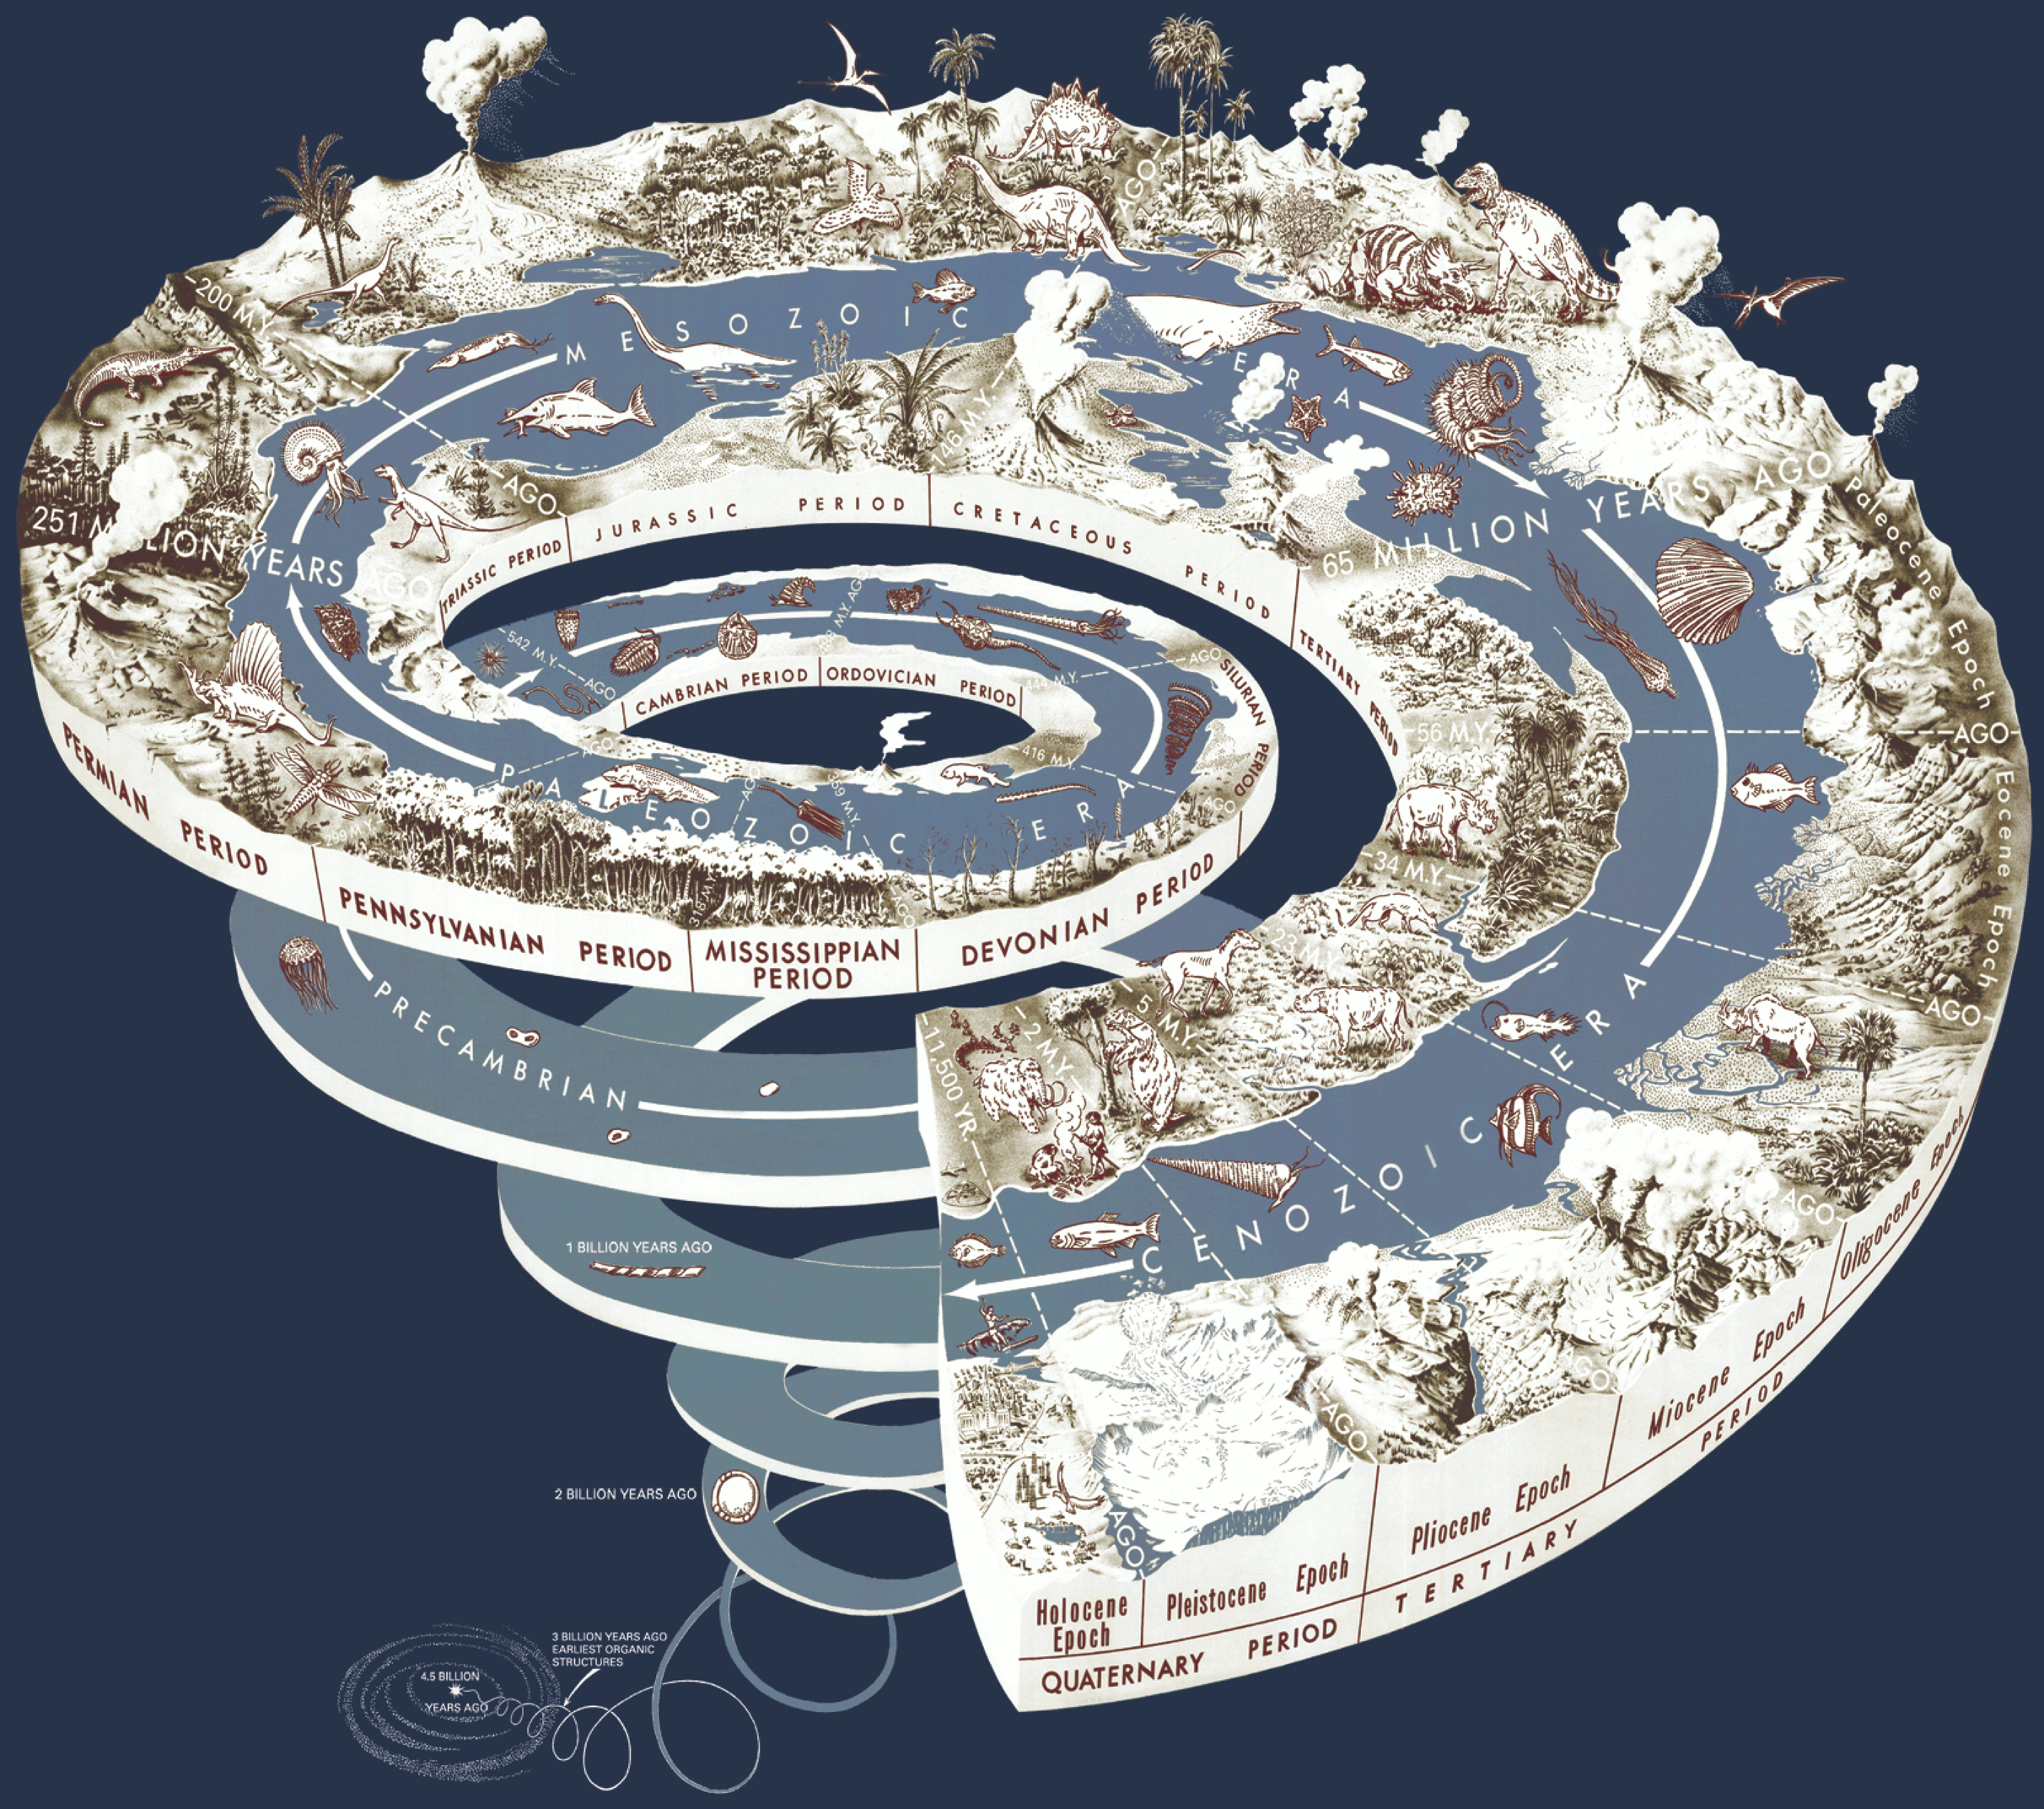 Graham, Joseph, Newman, William, and Stacy, John, 2008,   The geologic time spiral    —A path to the past  (ver. 1.1): U.S. Geological Survey General Information Product 58, poster, 1 sheet. Public domain. Click on image to enlarge.